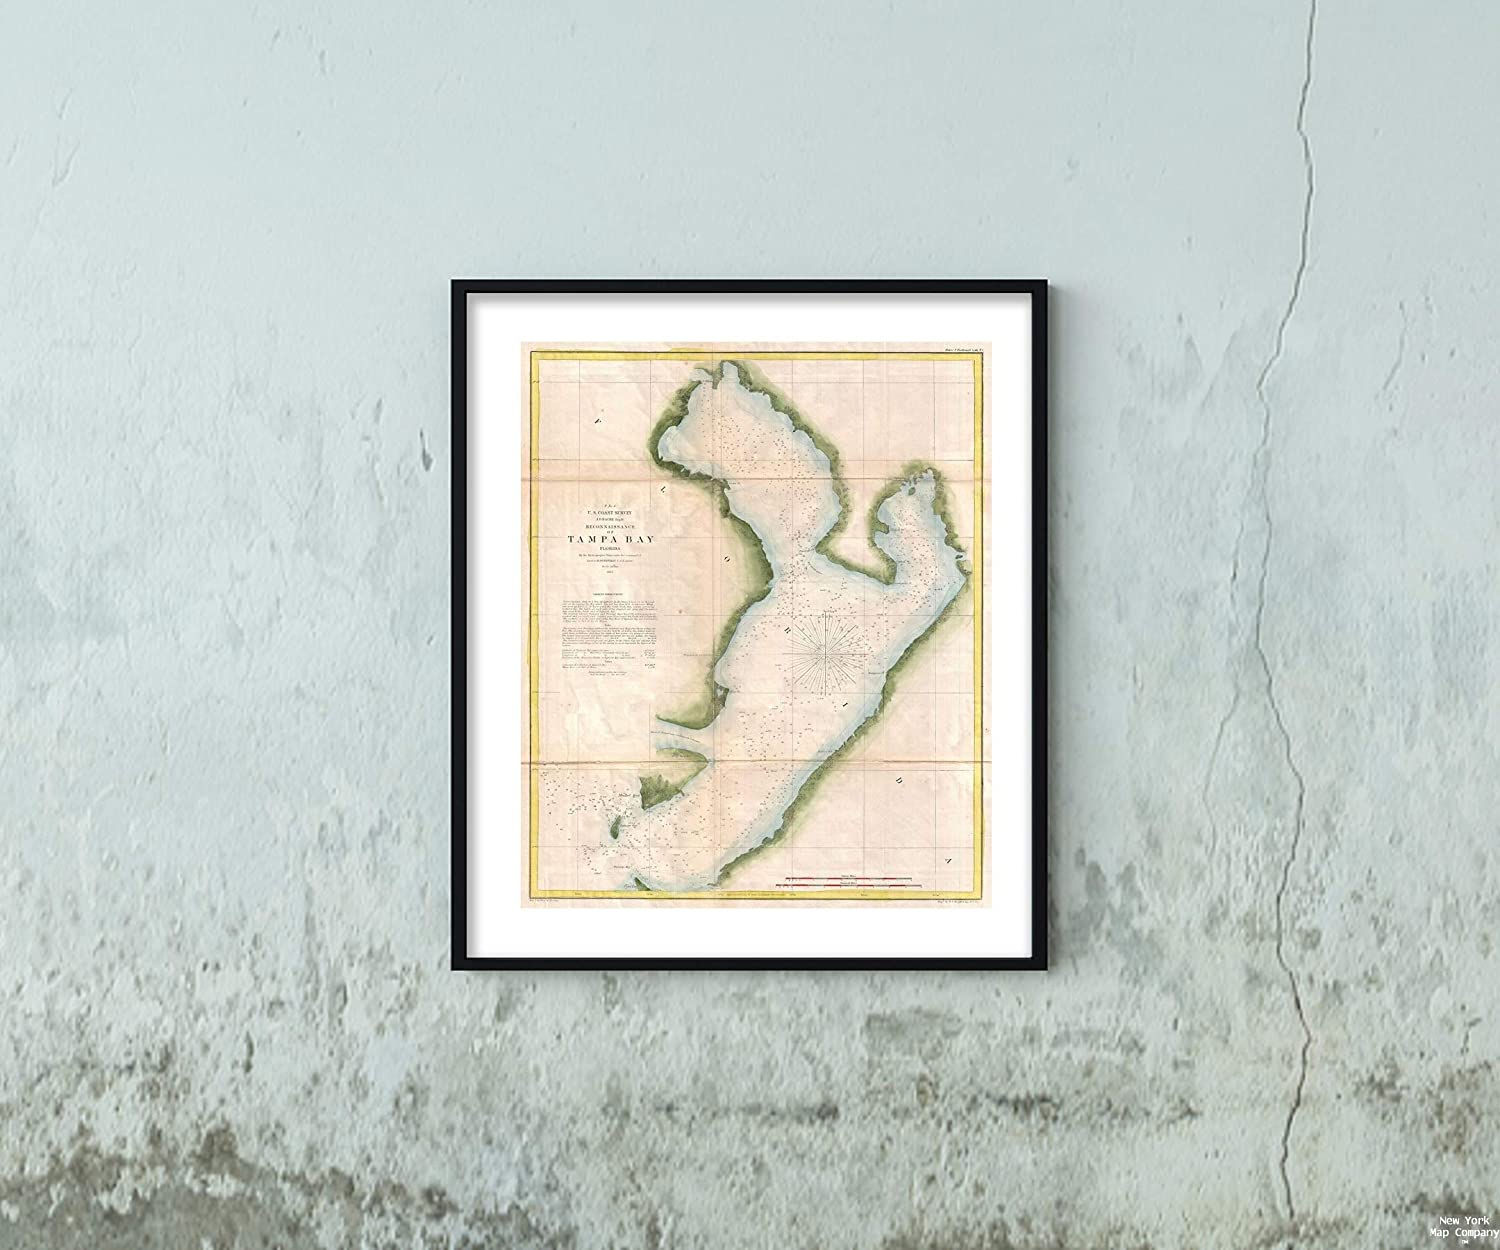 1855 U.S. Coast Survey Chart or of Tampa Bay, Florida Map|Vintage Fine Art Reproduction|Size: 20x24|Ready to Frame